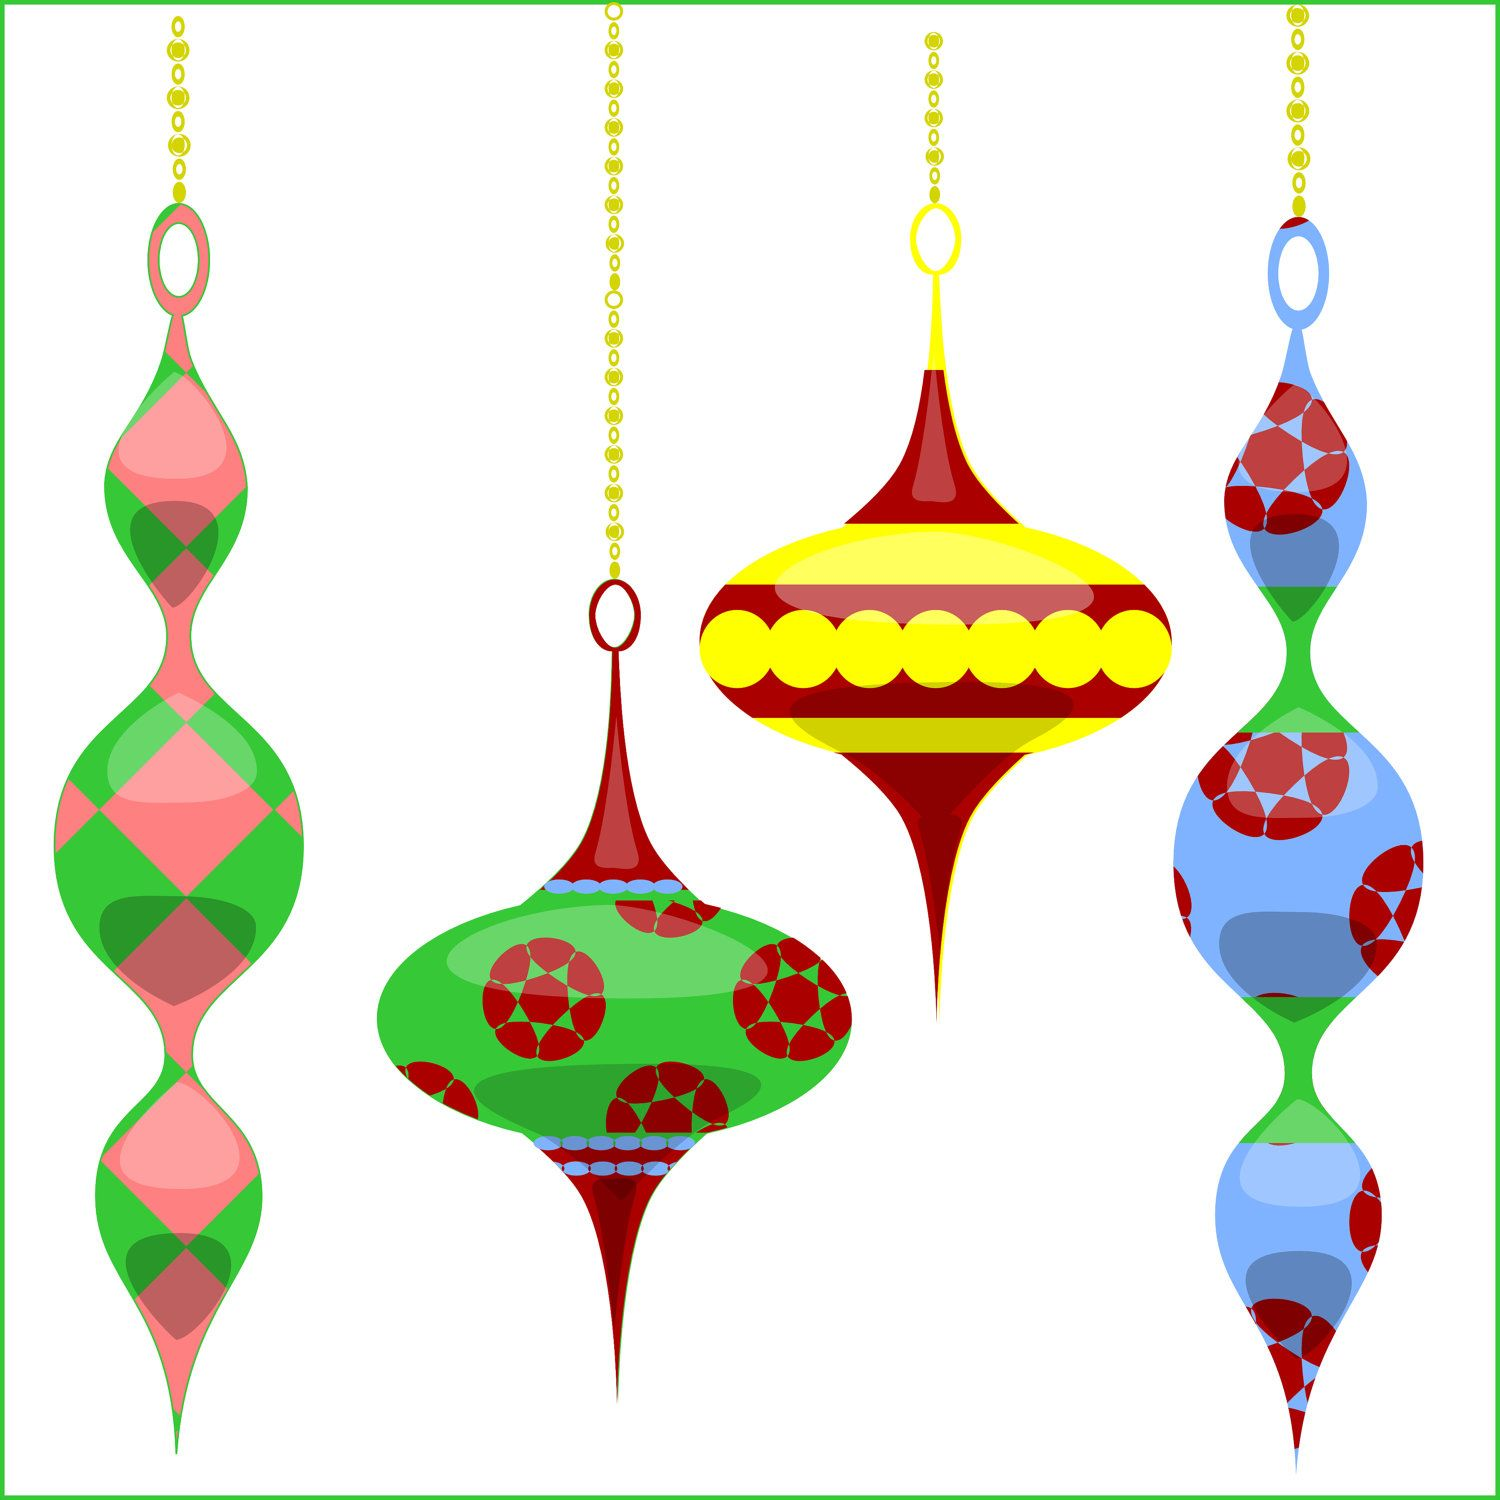 Ornament clipart christmas tree ornament. Ornaments clip art for